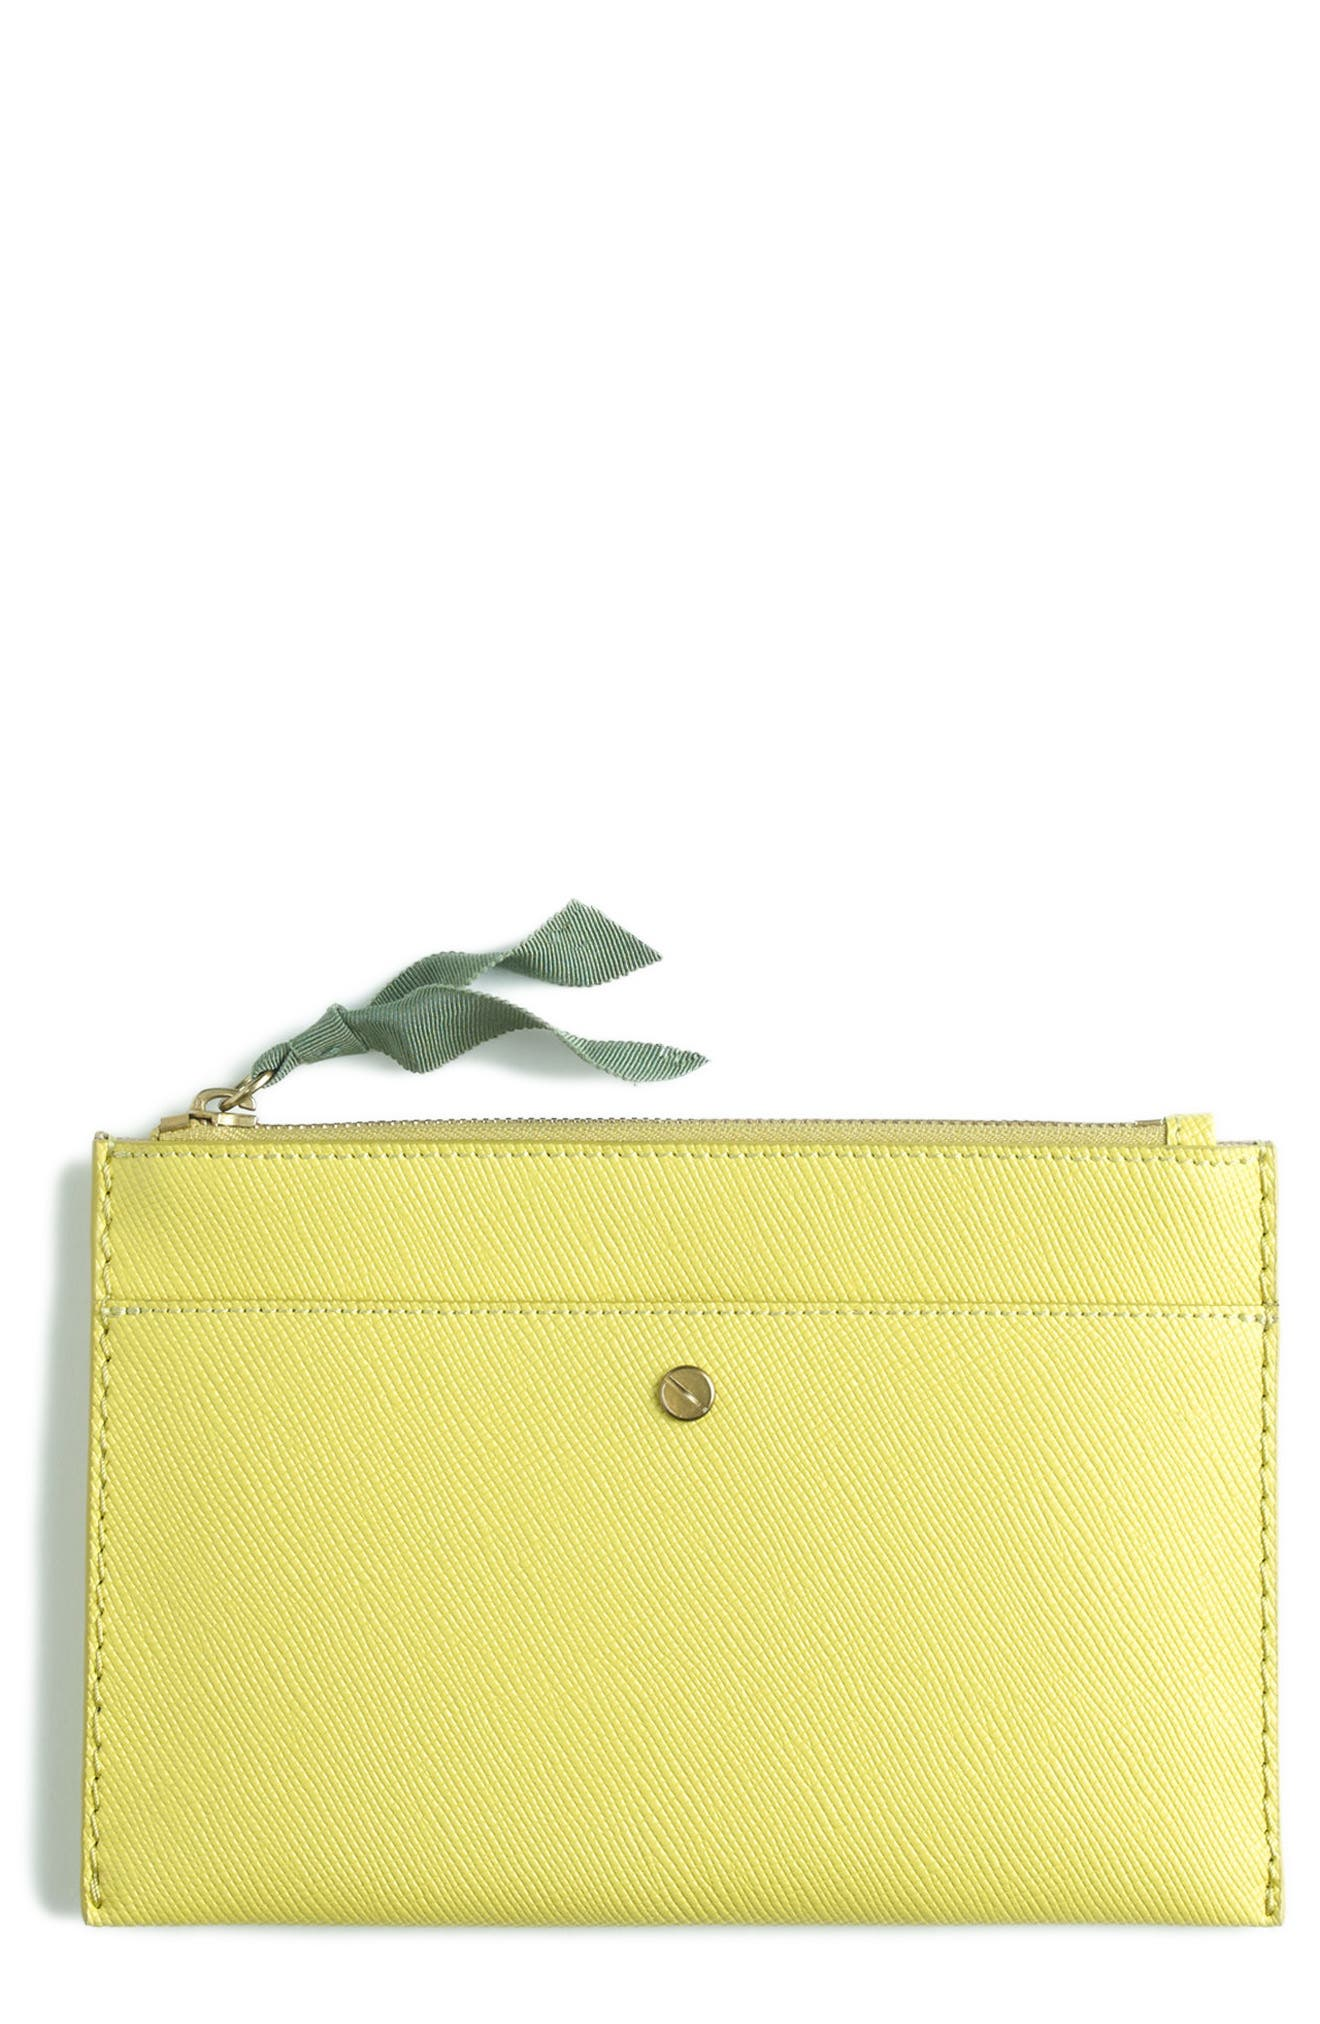 J.Crew Medium Leather Zip Top Pouch